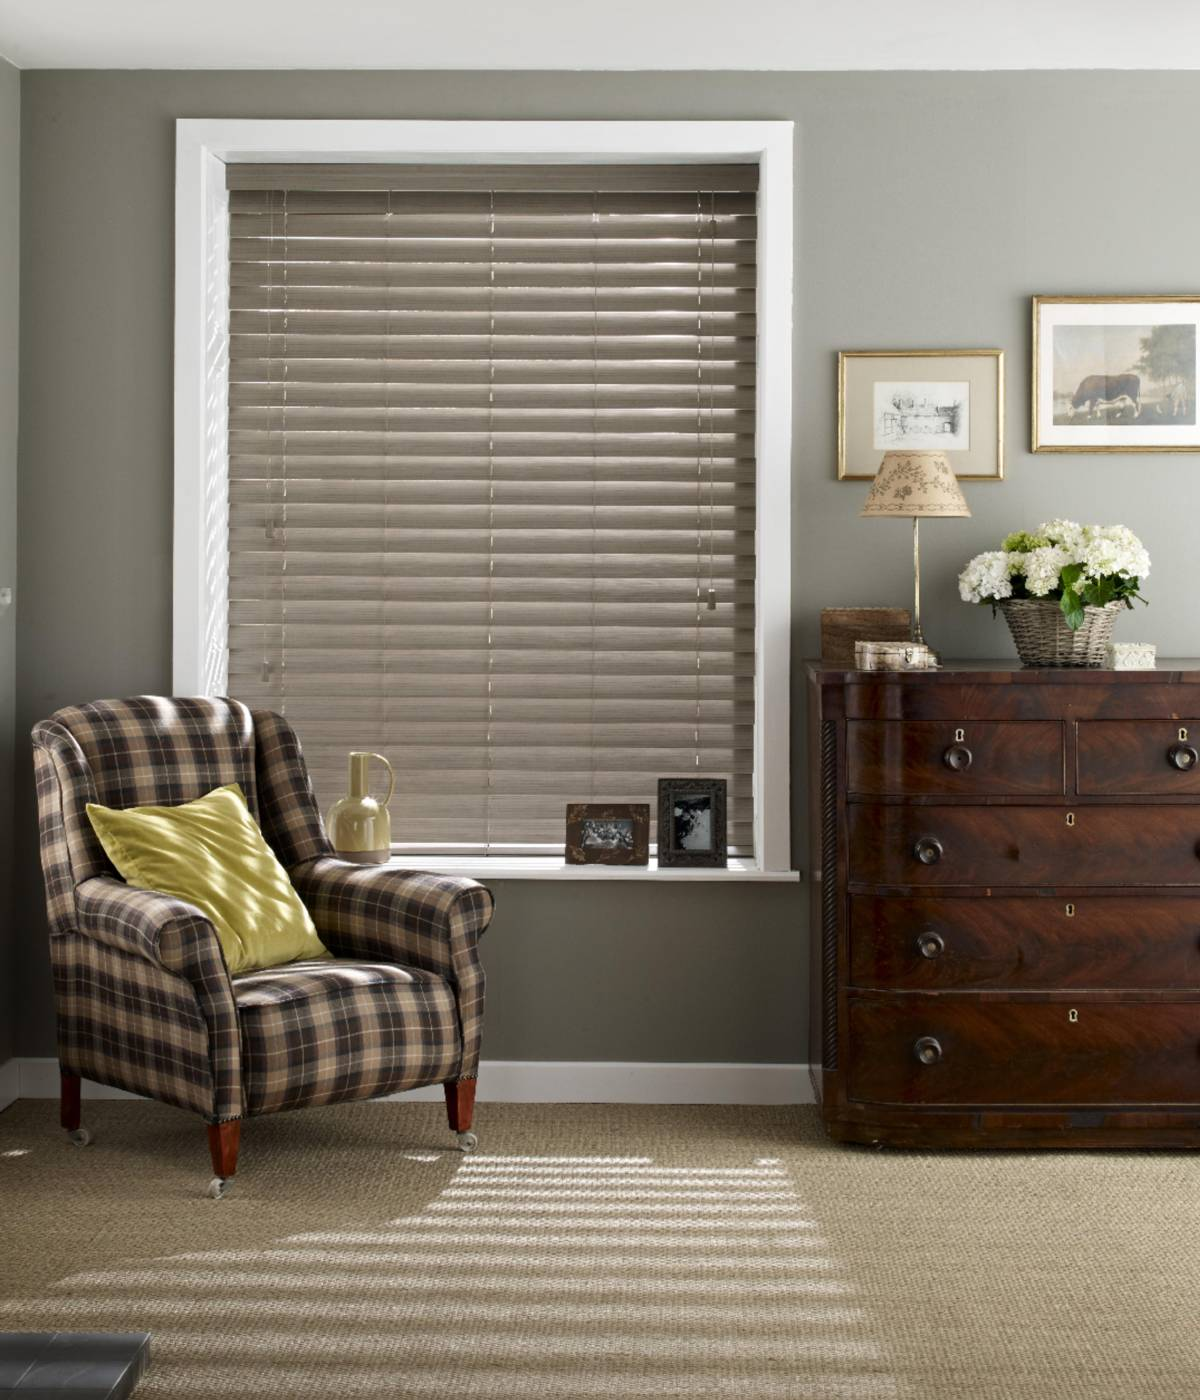 wide wooden venetian blinds